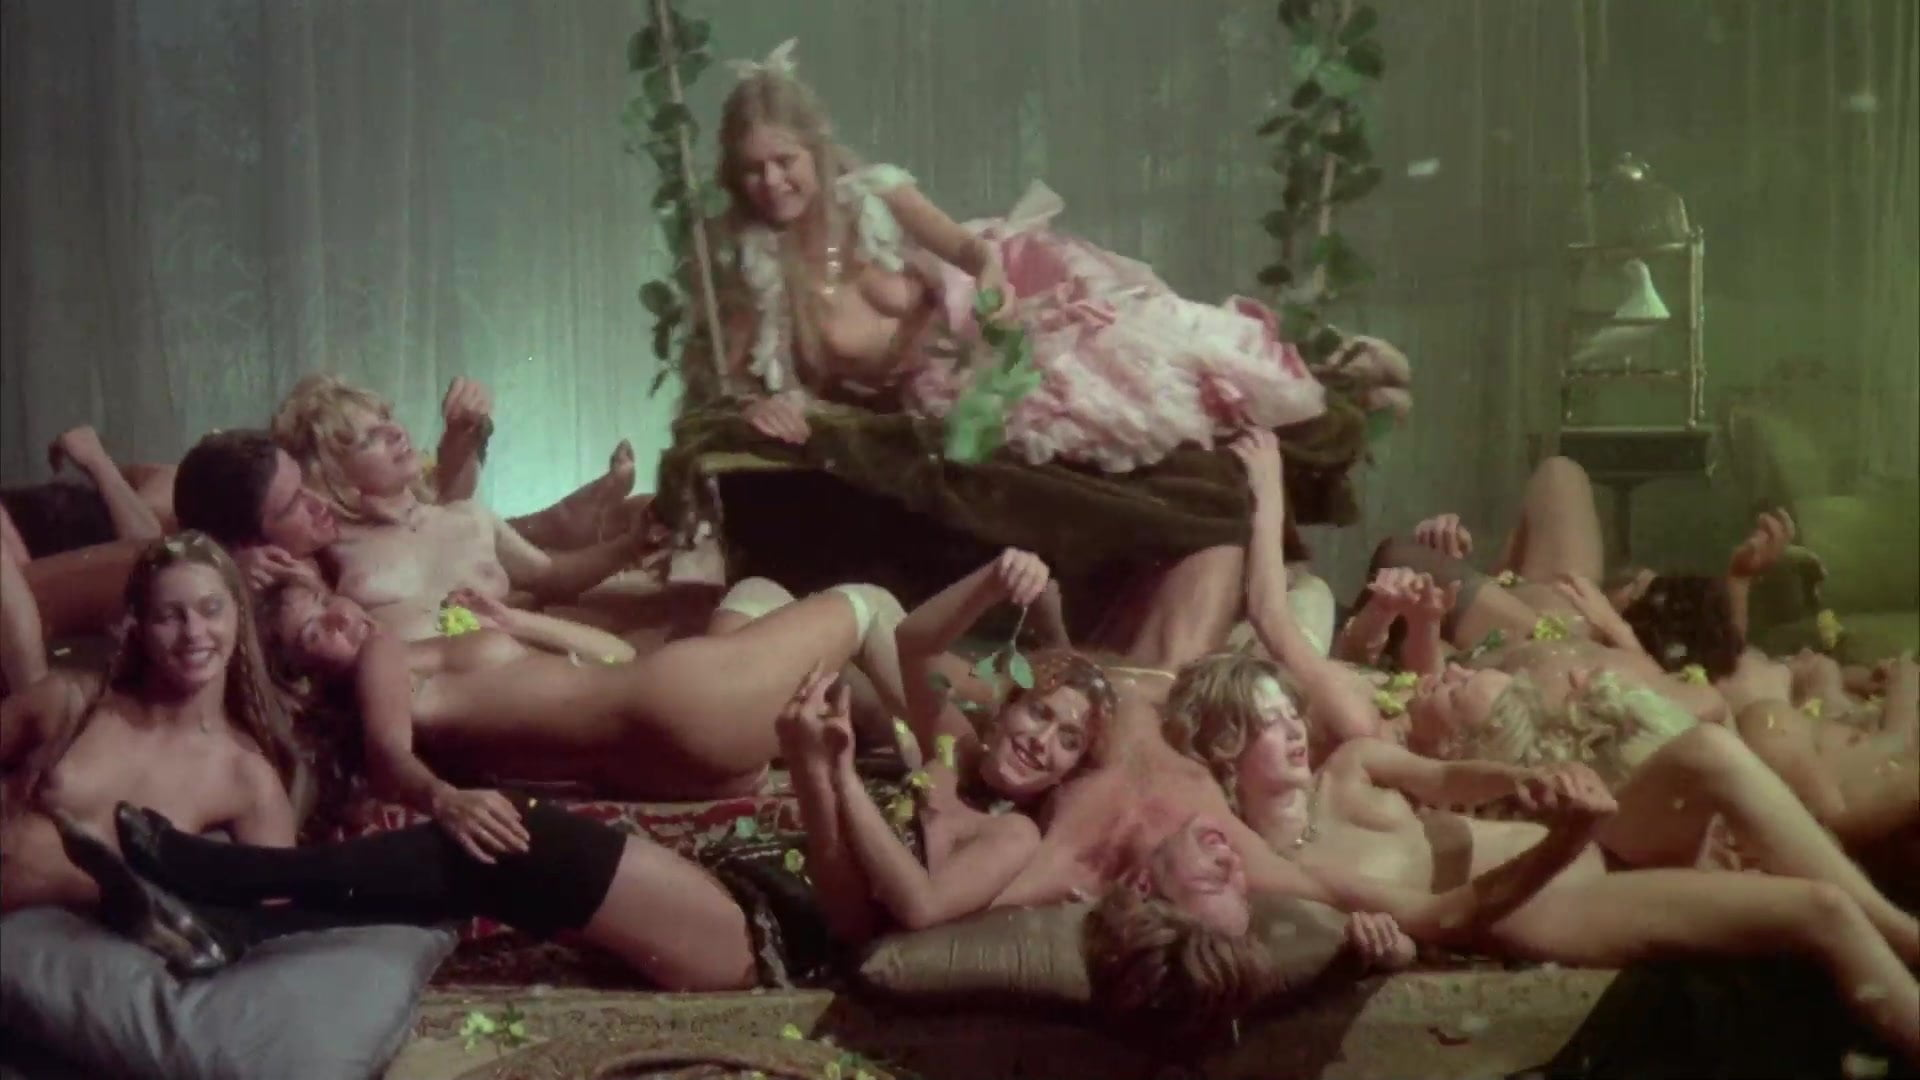 Alice In Wonderland A Musical Porno 1976 vices prives, vertus publiques (1976)